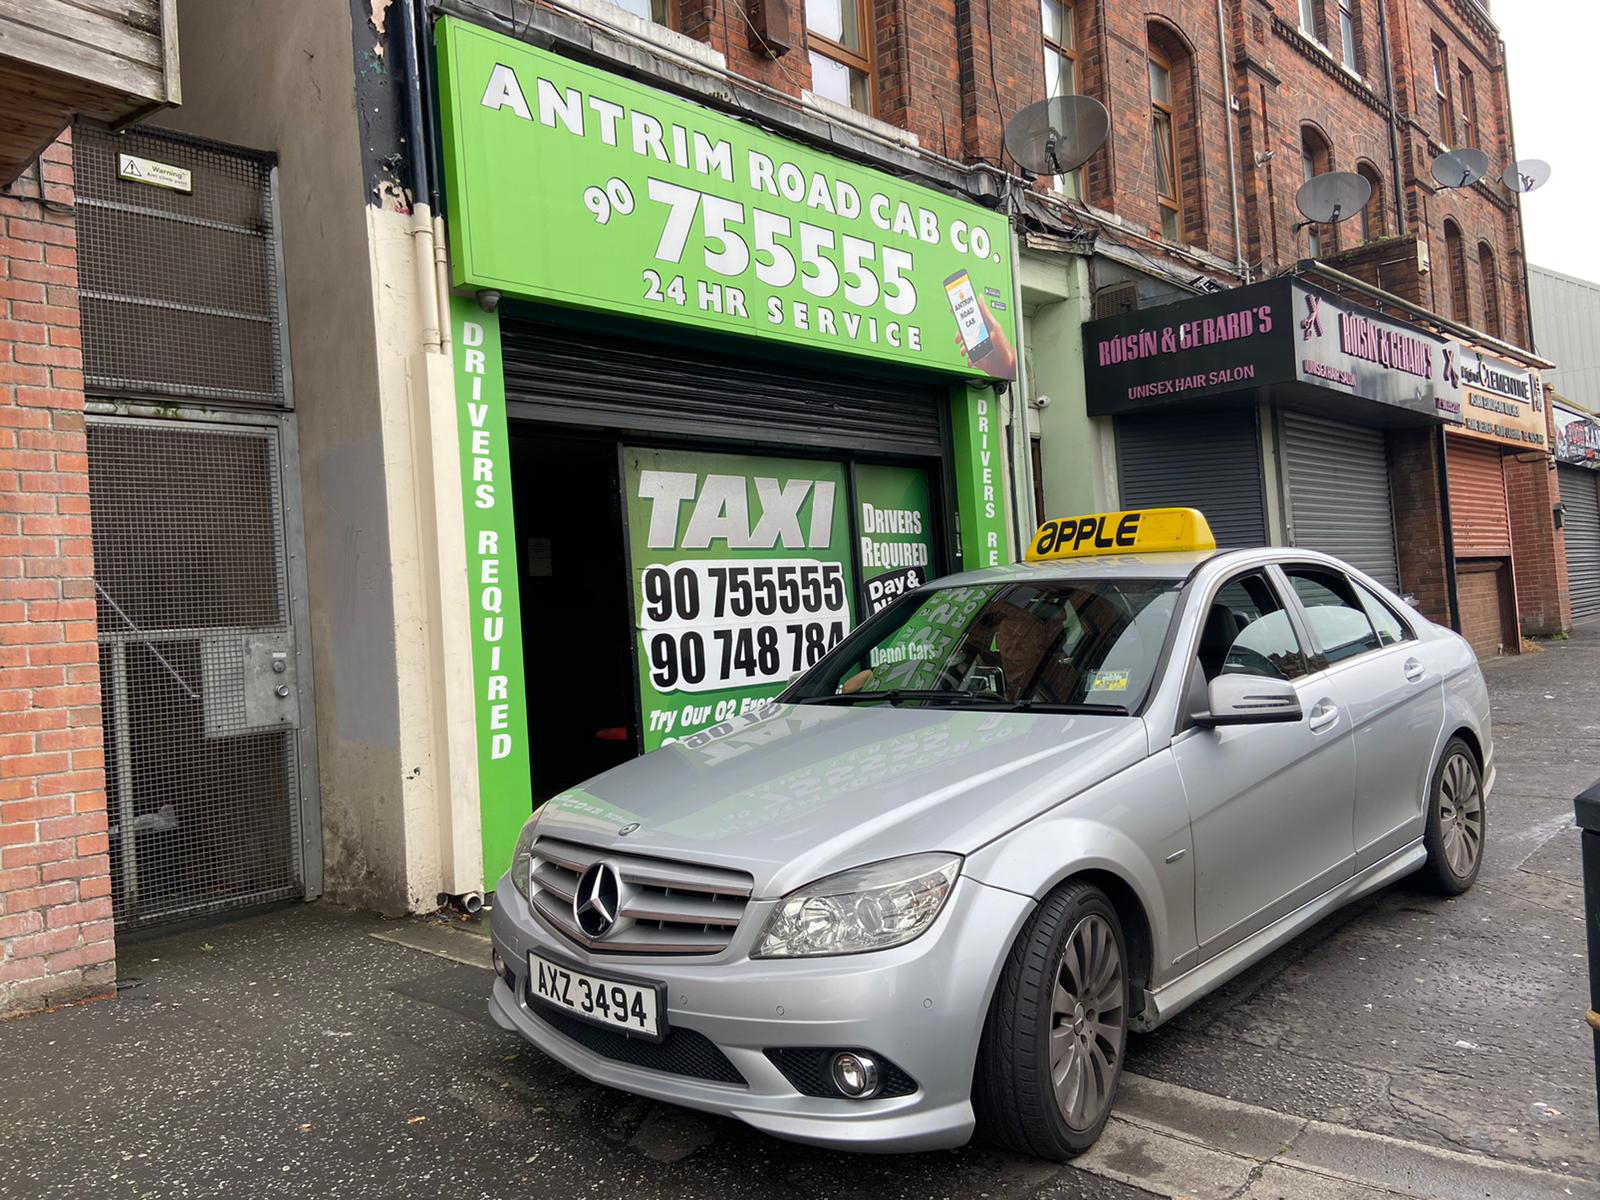 GETTING YOU ON THE FAST TRACK: Apple Taxis on the Antrim Road.